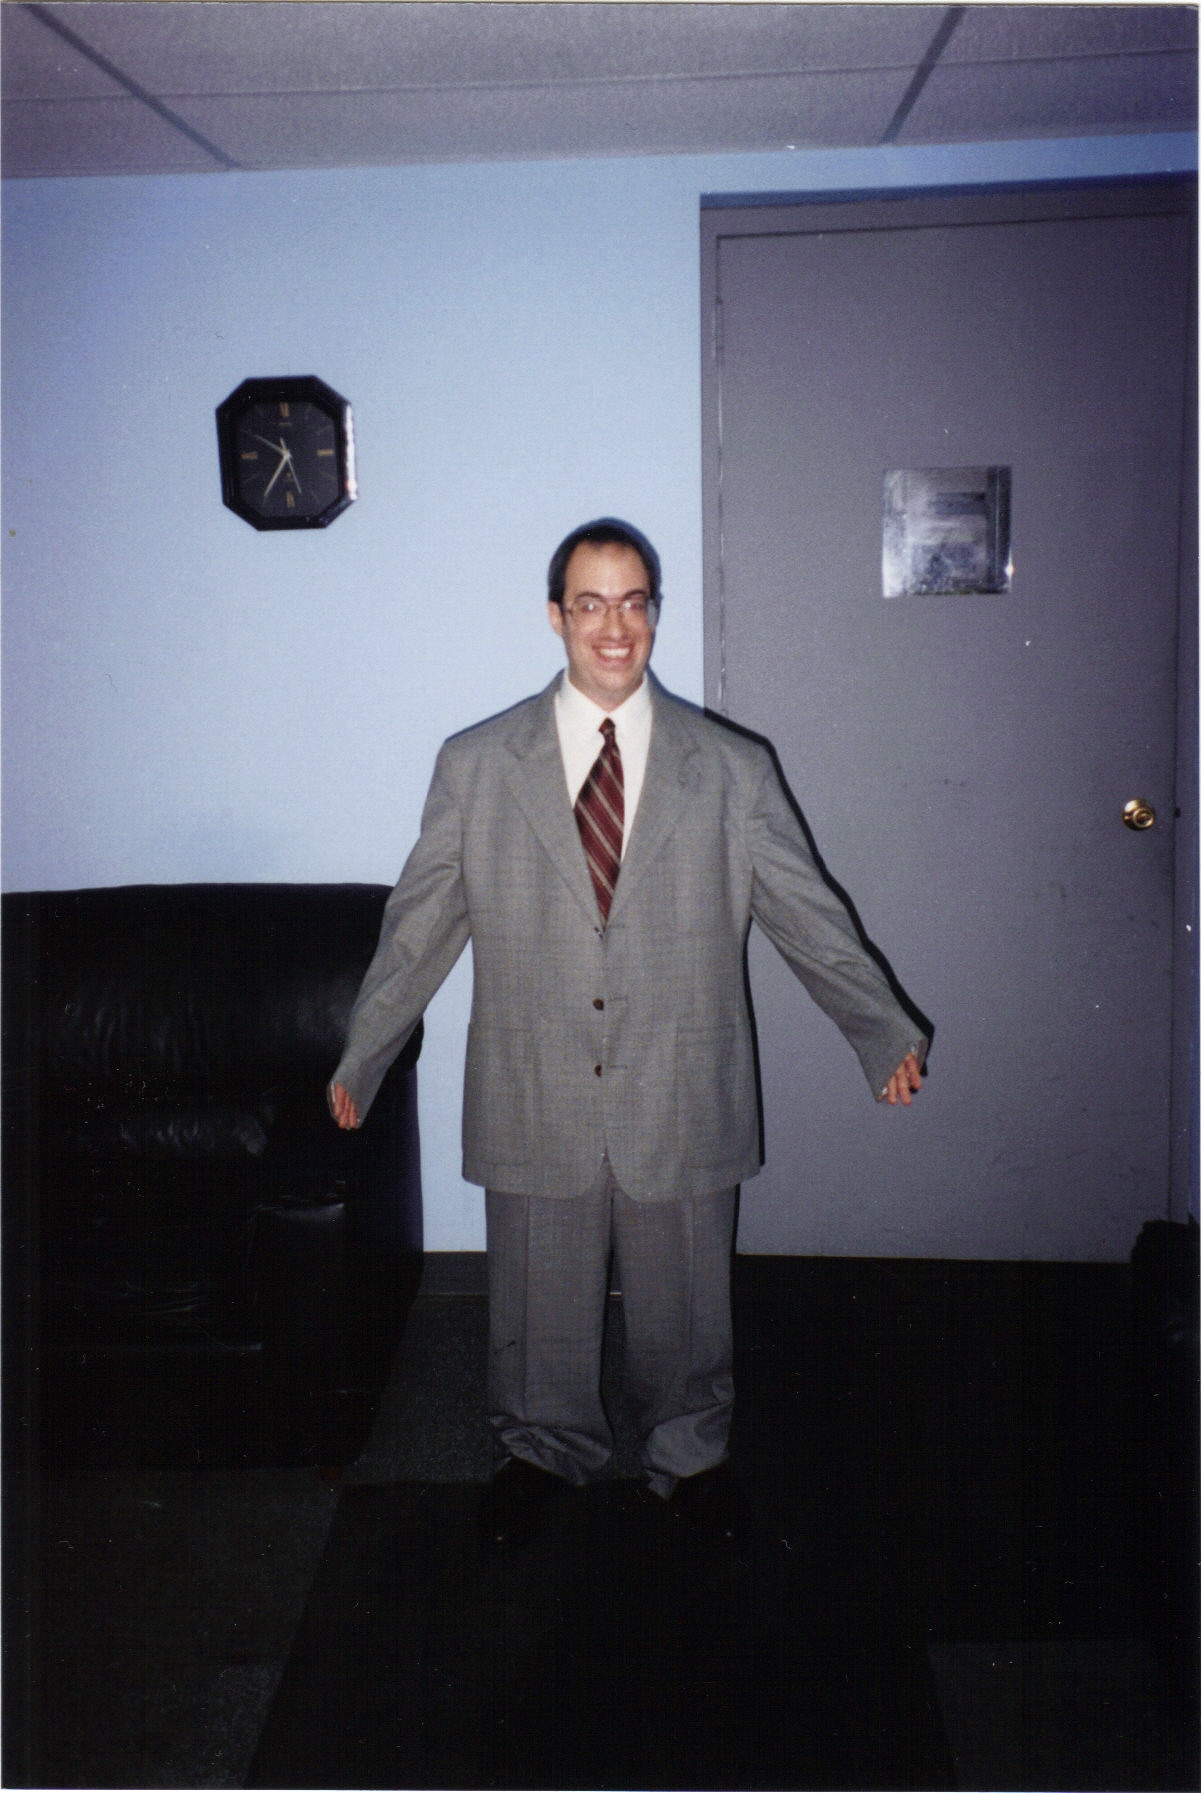 Jeff as a Short Guy in a Big Suit.